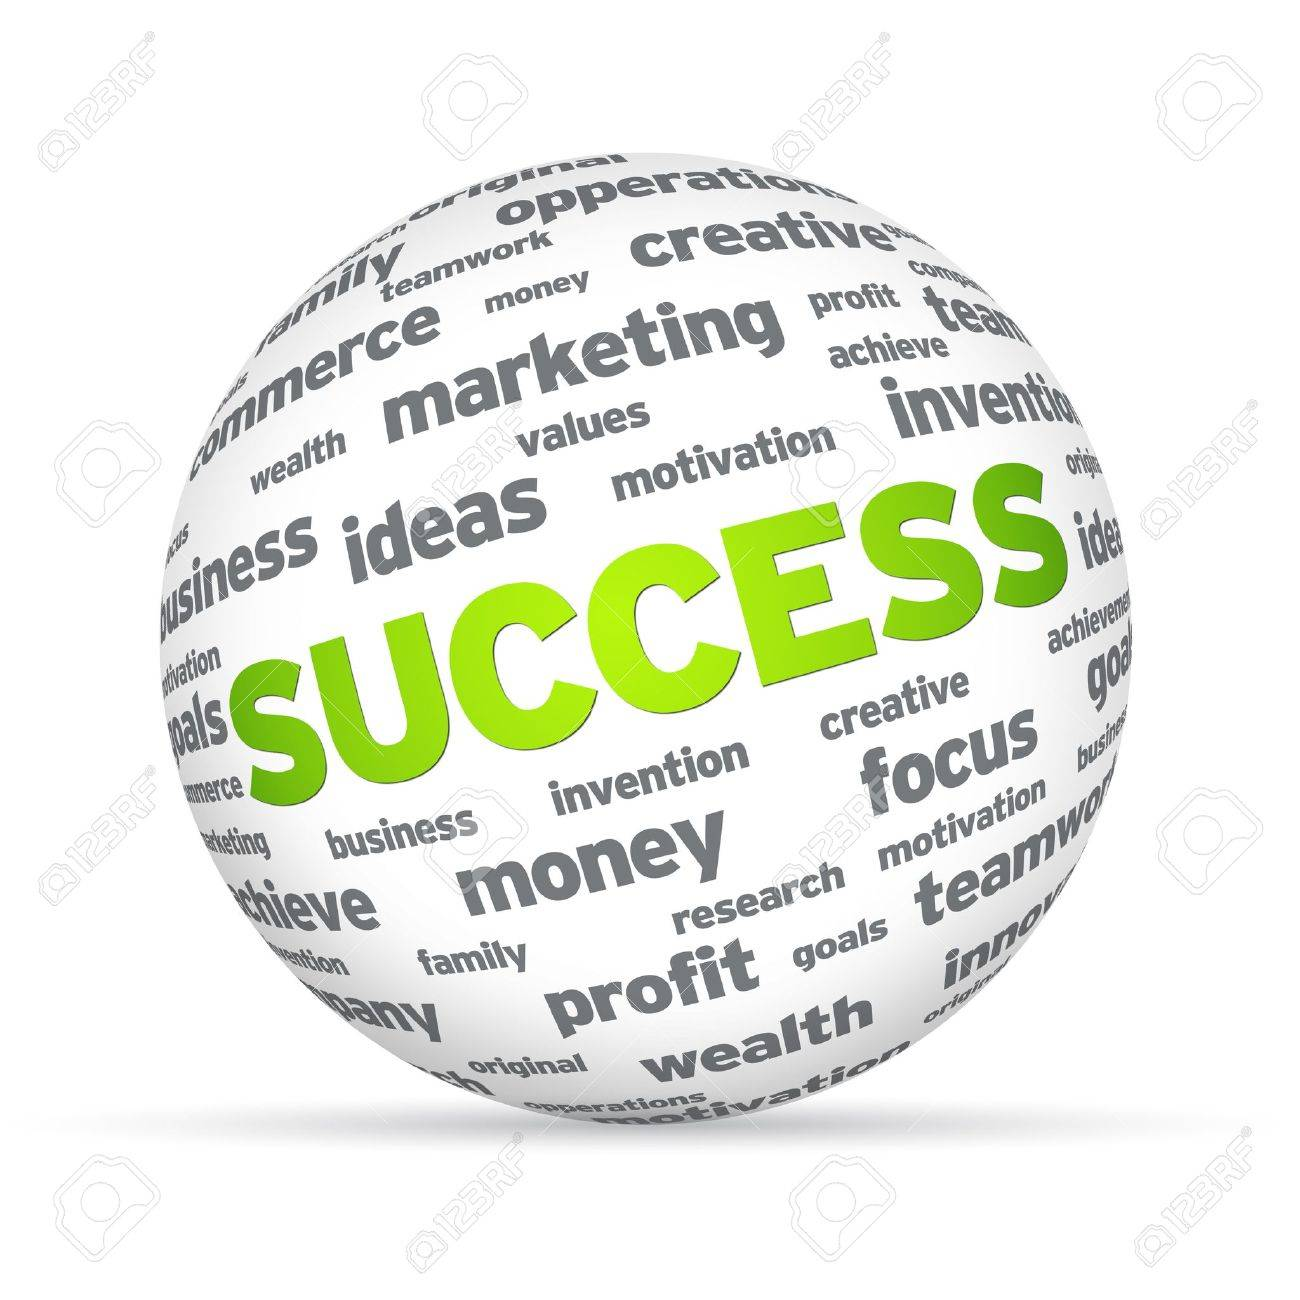 Sphere with success words on white background. Stock Photo - 12253133